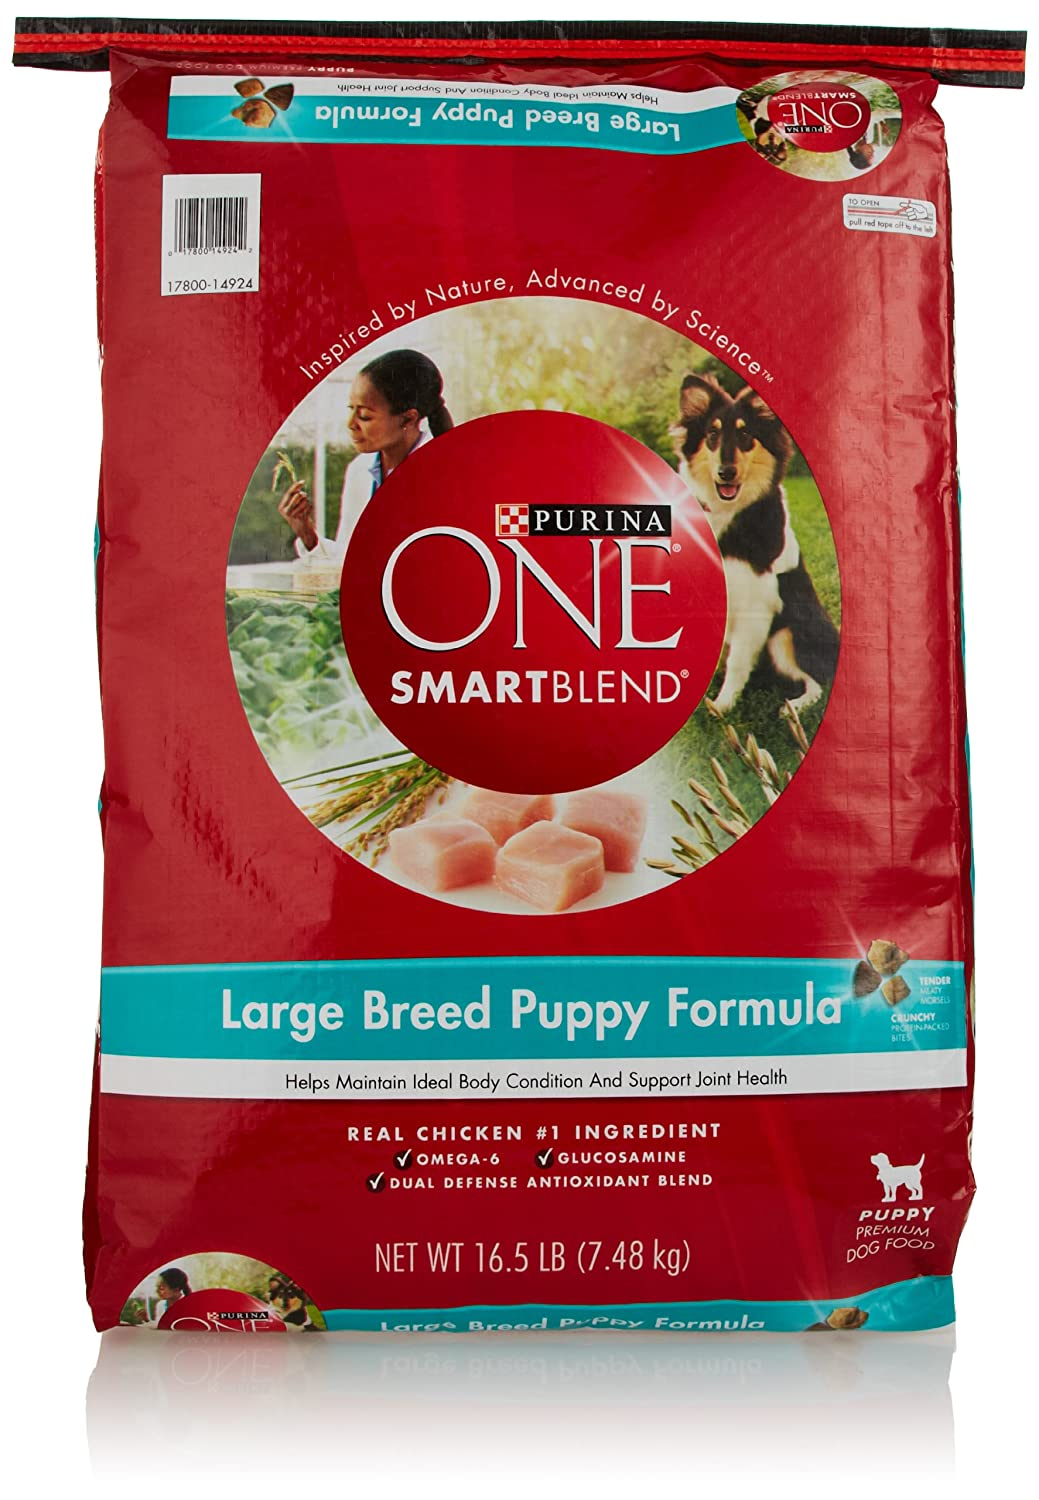 Purina ONE Dog Smartblend, Large Breed Puppy Formula, 16.5 lb